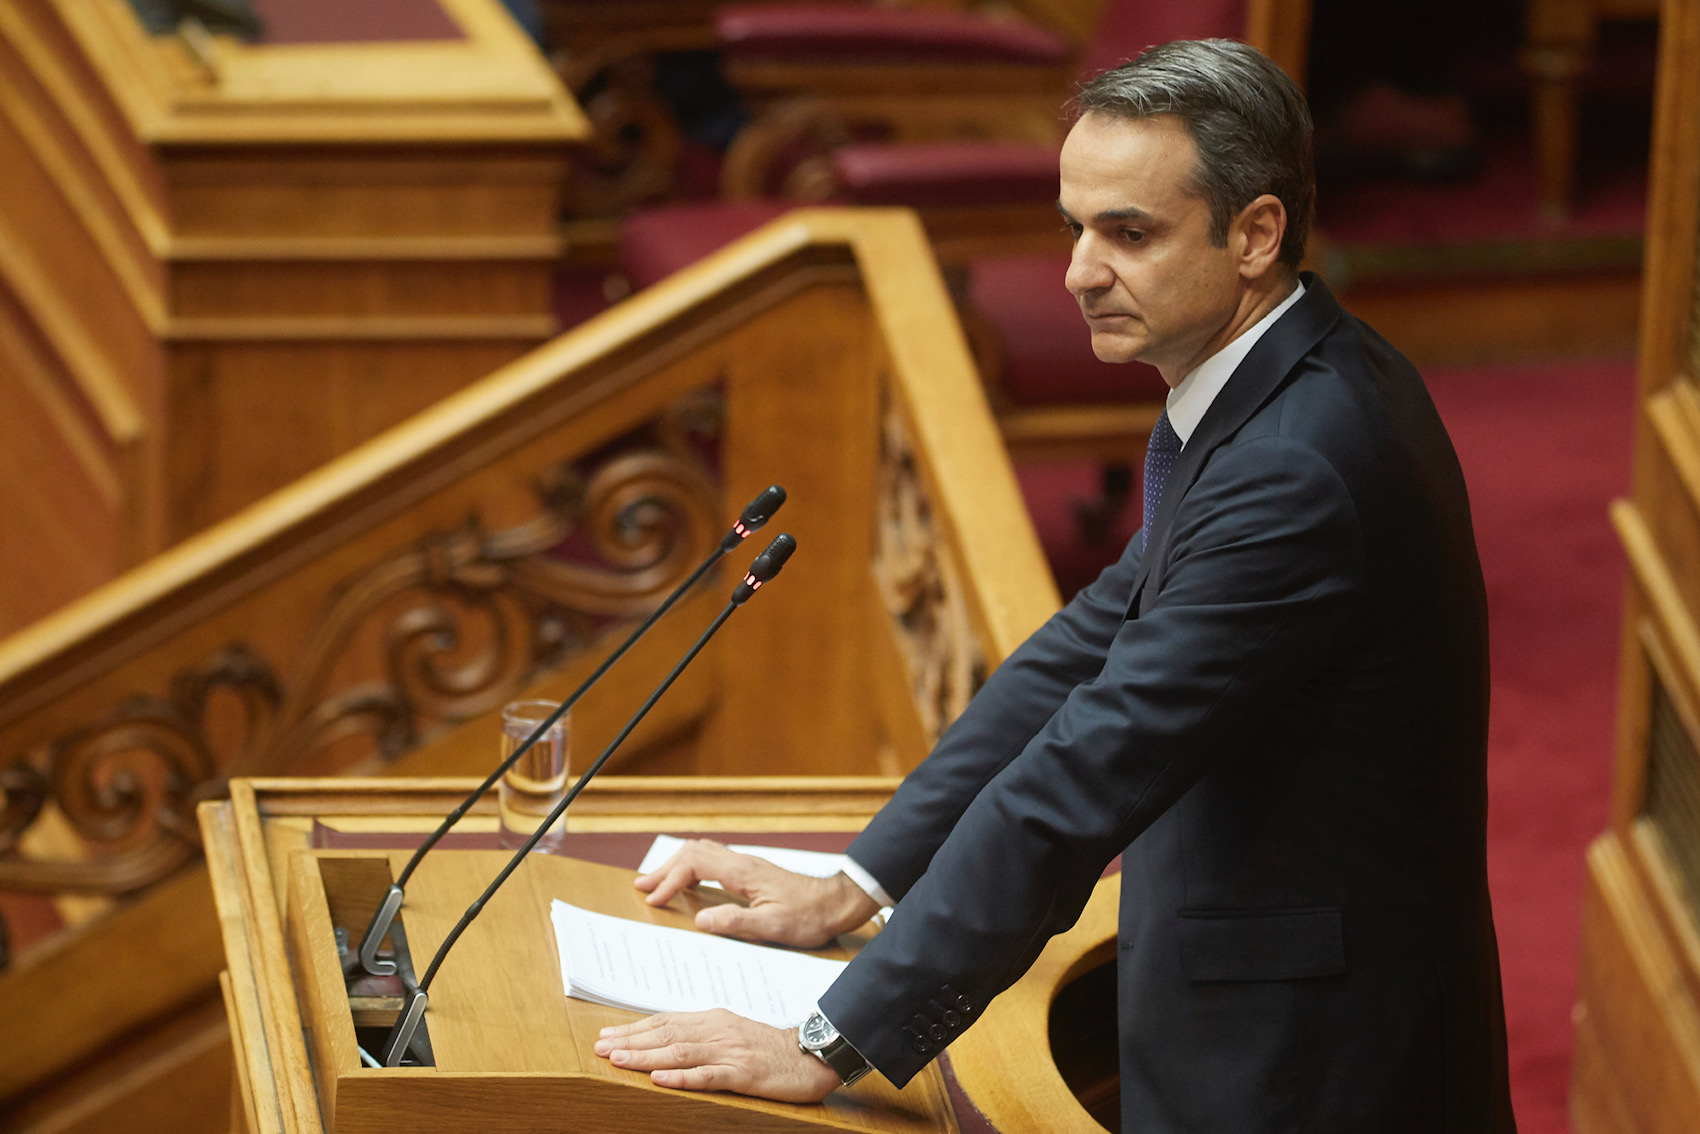 With positive surprises the programmatic statements of Mitsotakis government